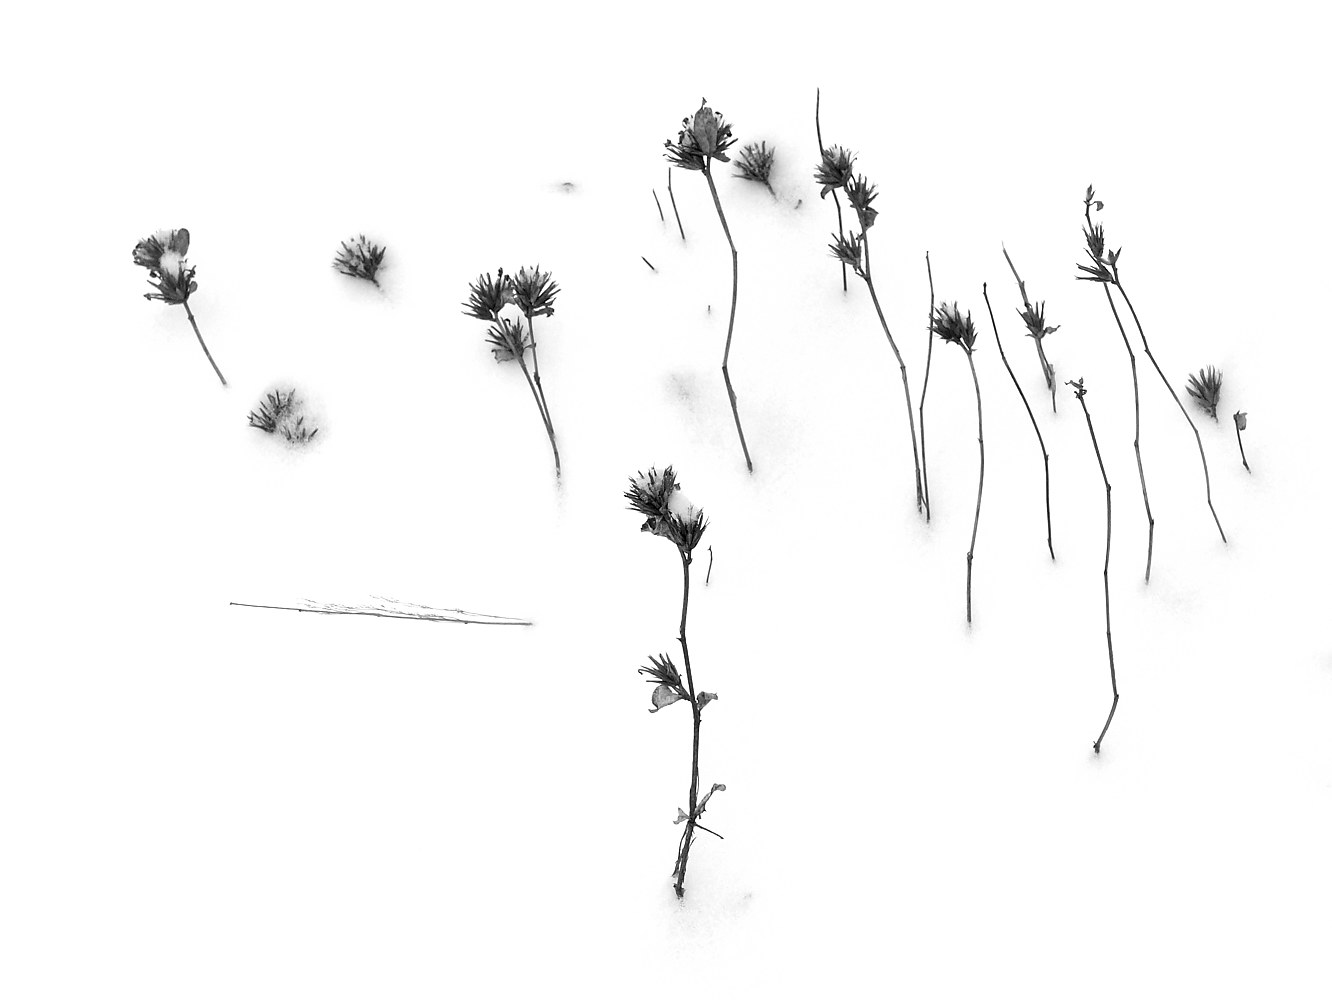 Snow Weeds 4 by Stuart Diekmeyer